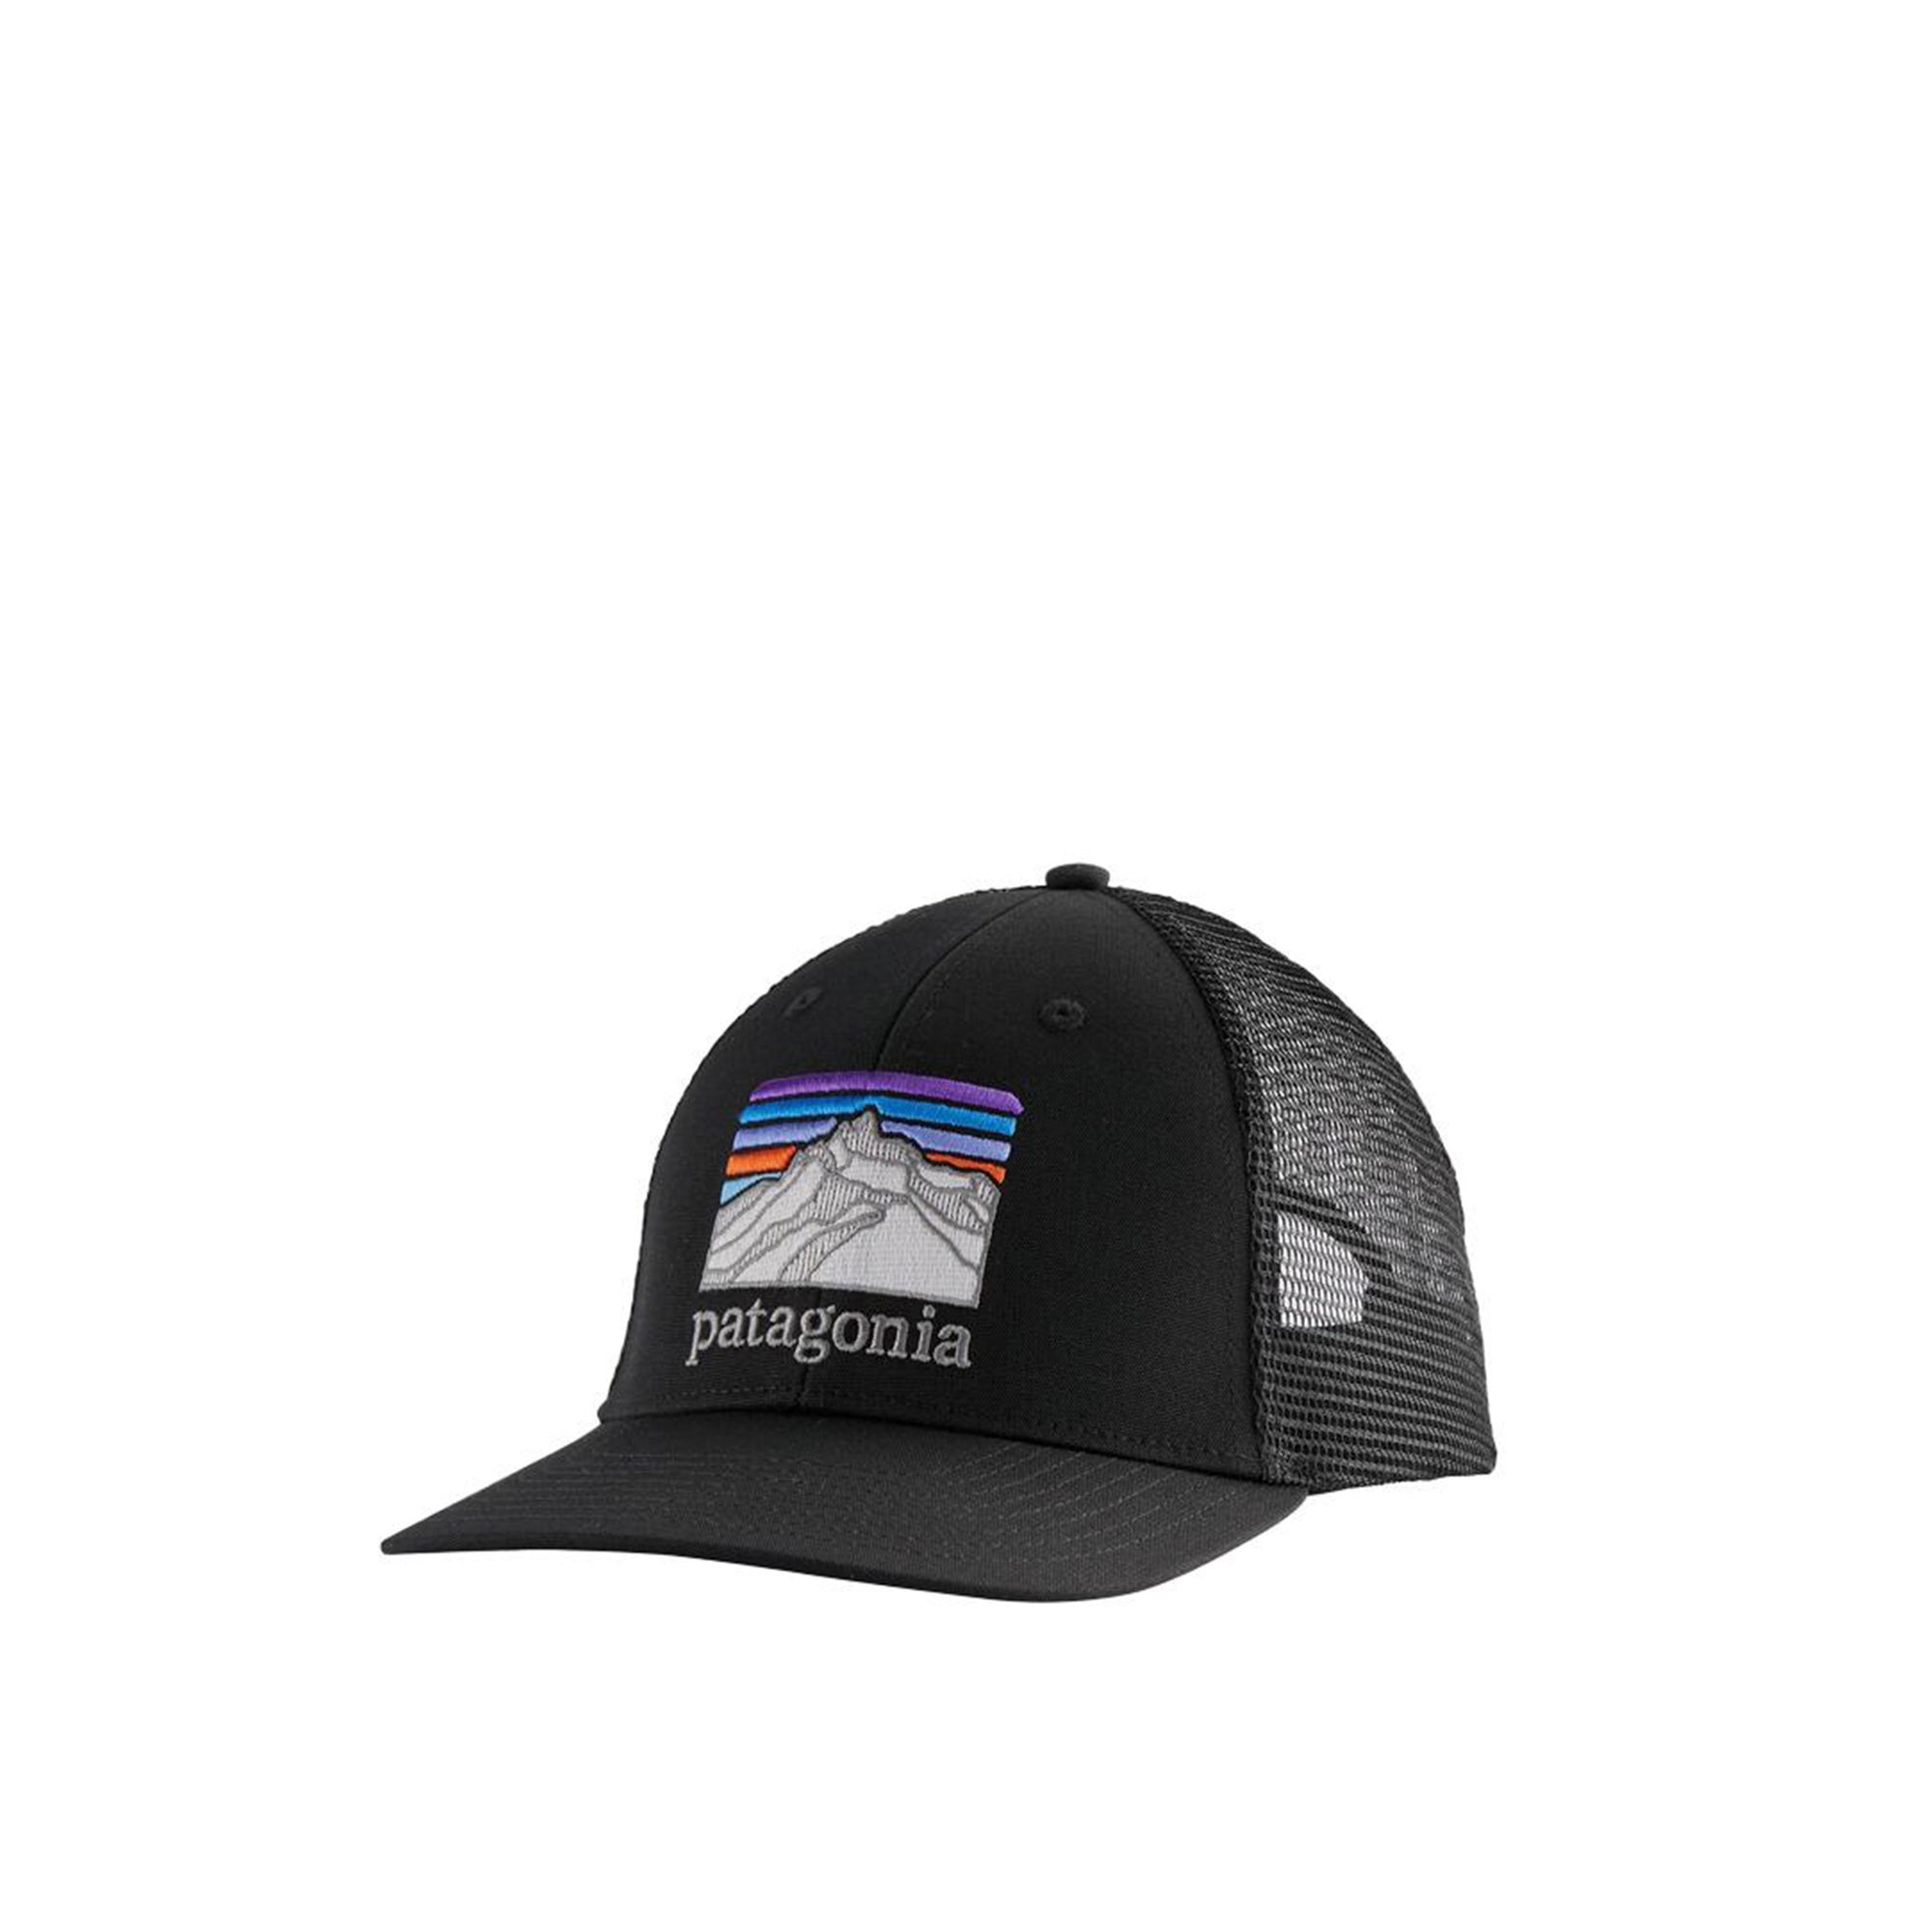 Patagonia Line Logo Ridge LoPro Trucker Hat: Black - The Union Project